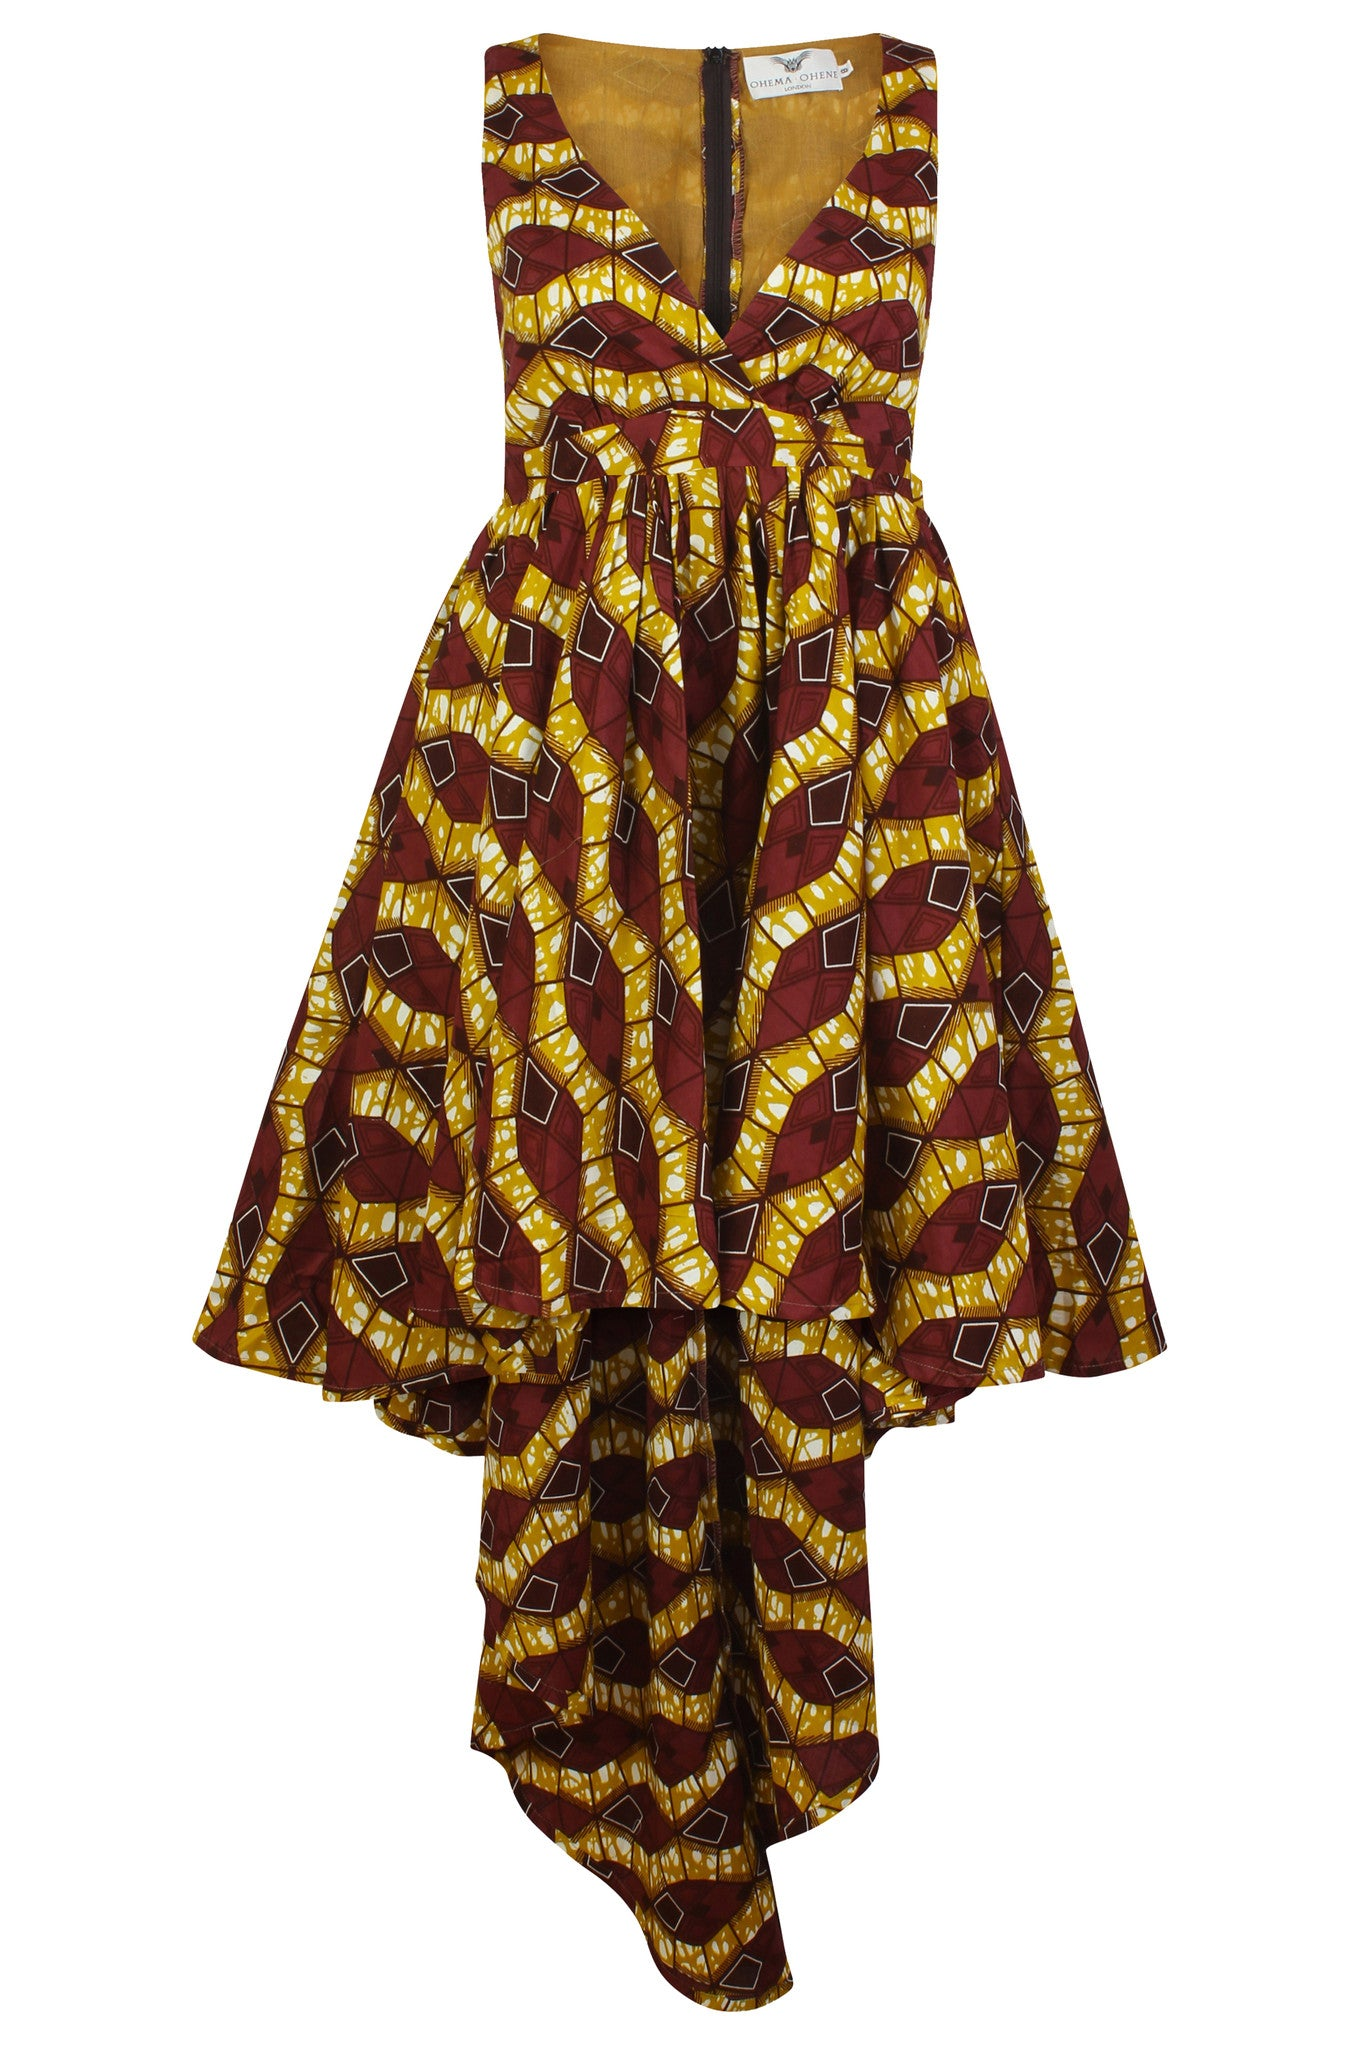 Azzme 'Louisa' African print Maxi Dress - OHEMA OHENE AFRICAN INSPIRED FASHION